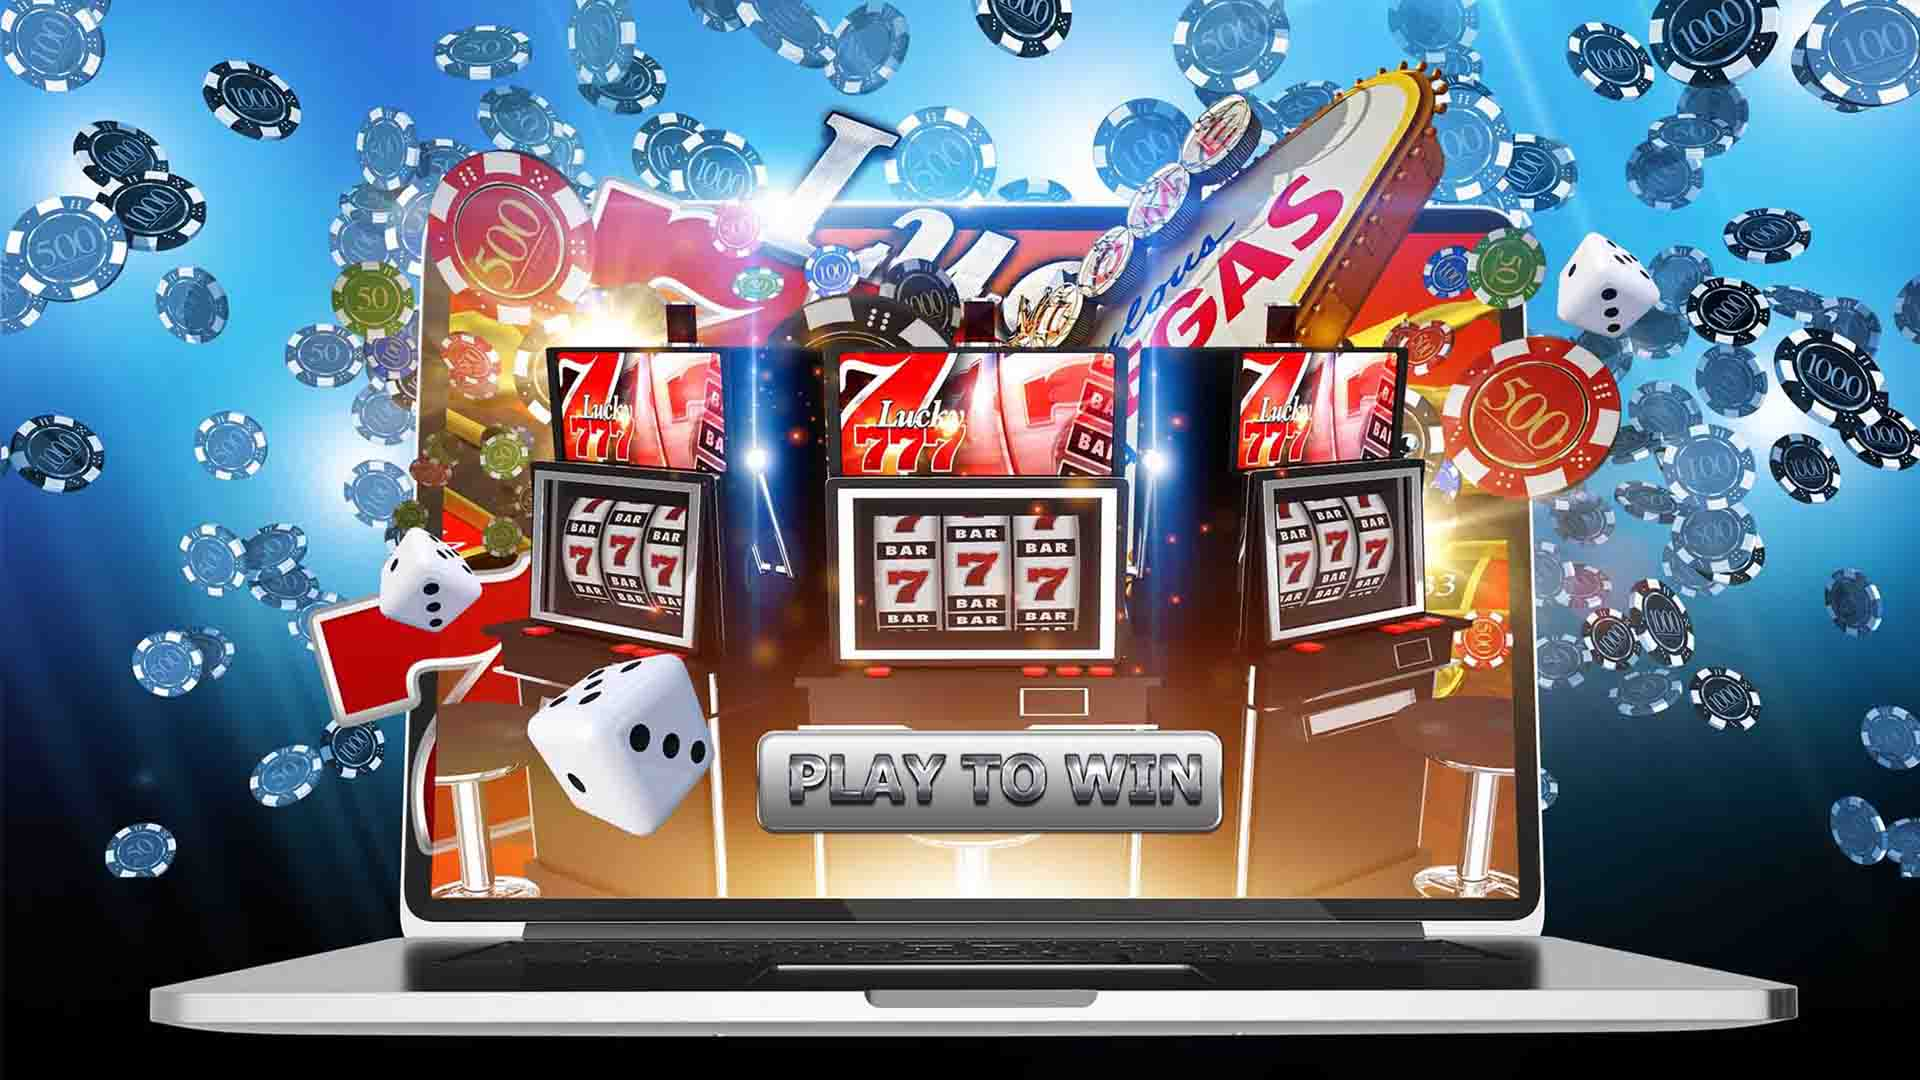 Reasons to Play Online Casino: Anything Goes